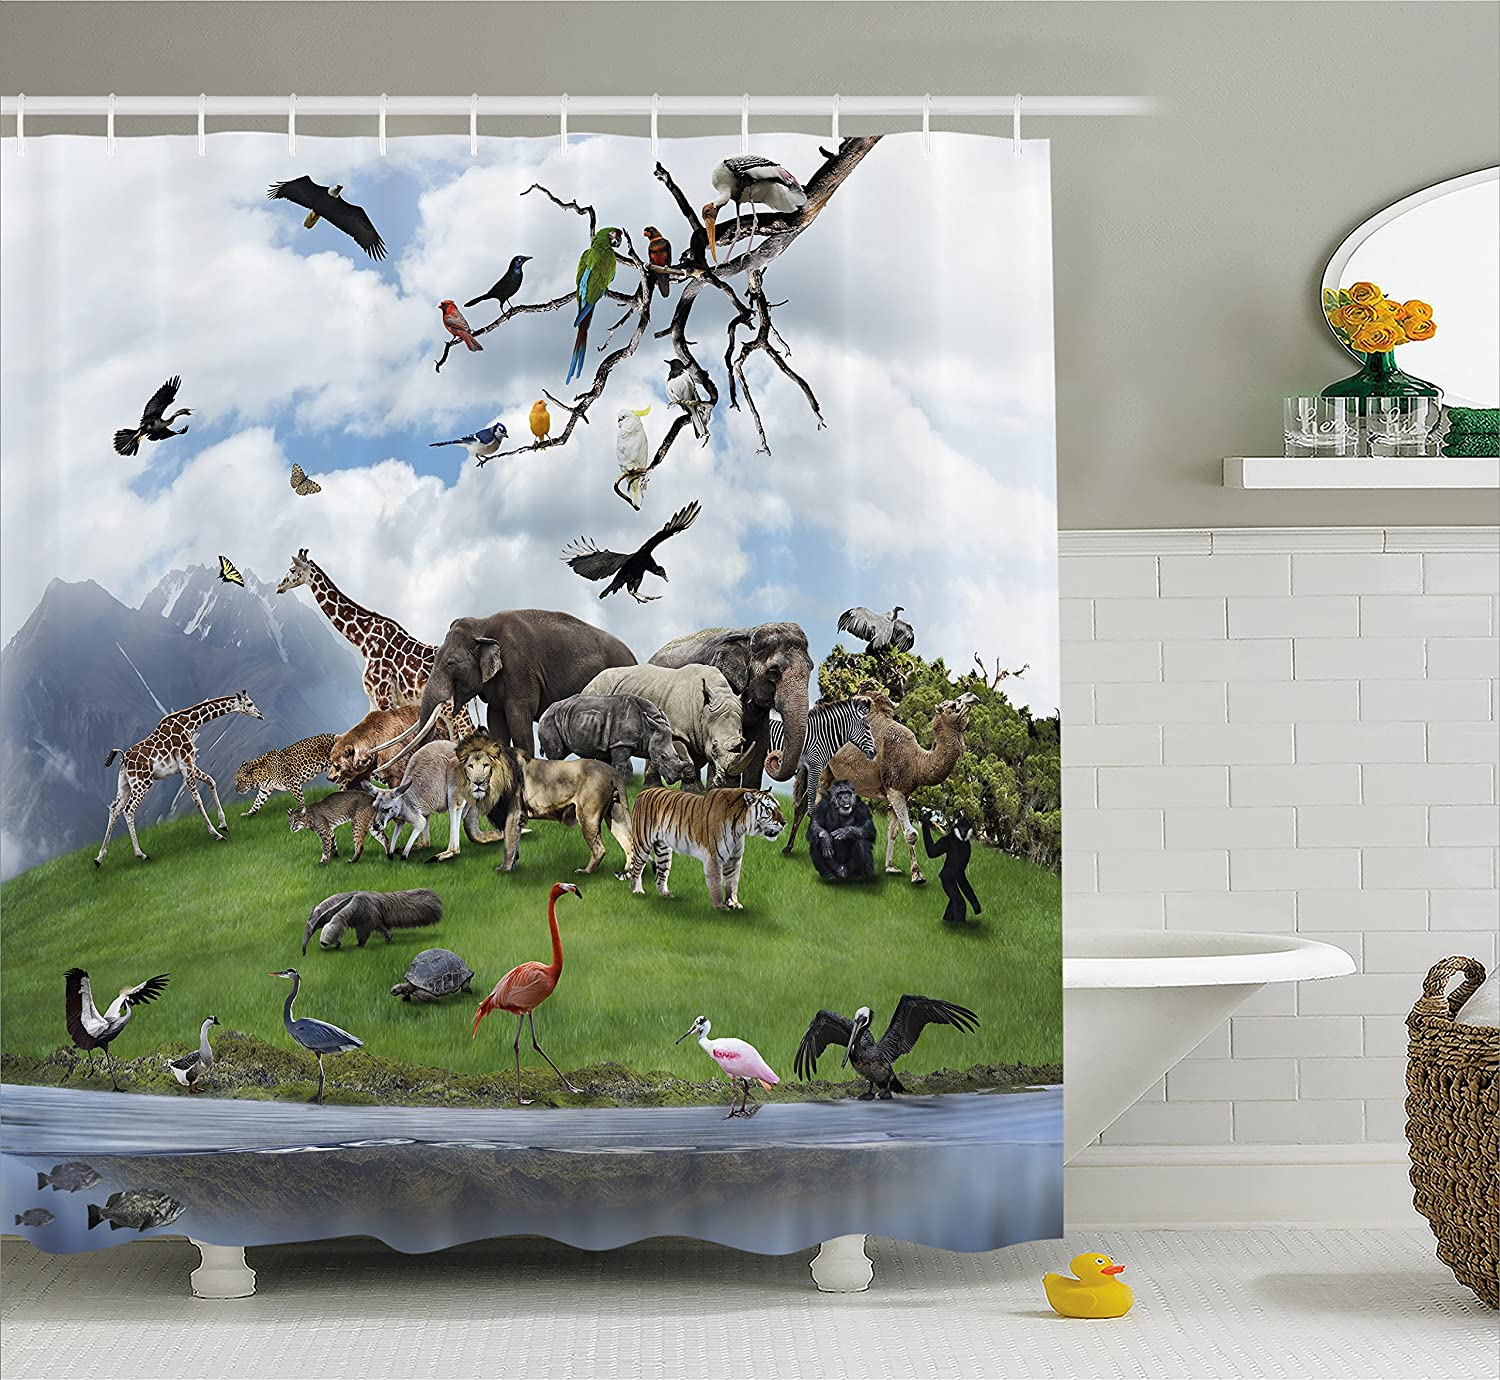 75 Inches Long Bathroom Accessories Ambesonne House Decor Shower Curtain Set Chinese Painting Style Artwork with Tree Branches Birds Mountains Landscape Art Red Green Black sc/_17416/_Cherry/_Blossom/_07.25/_long